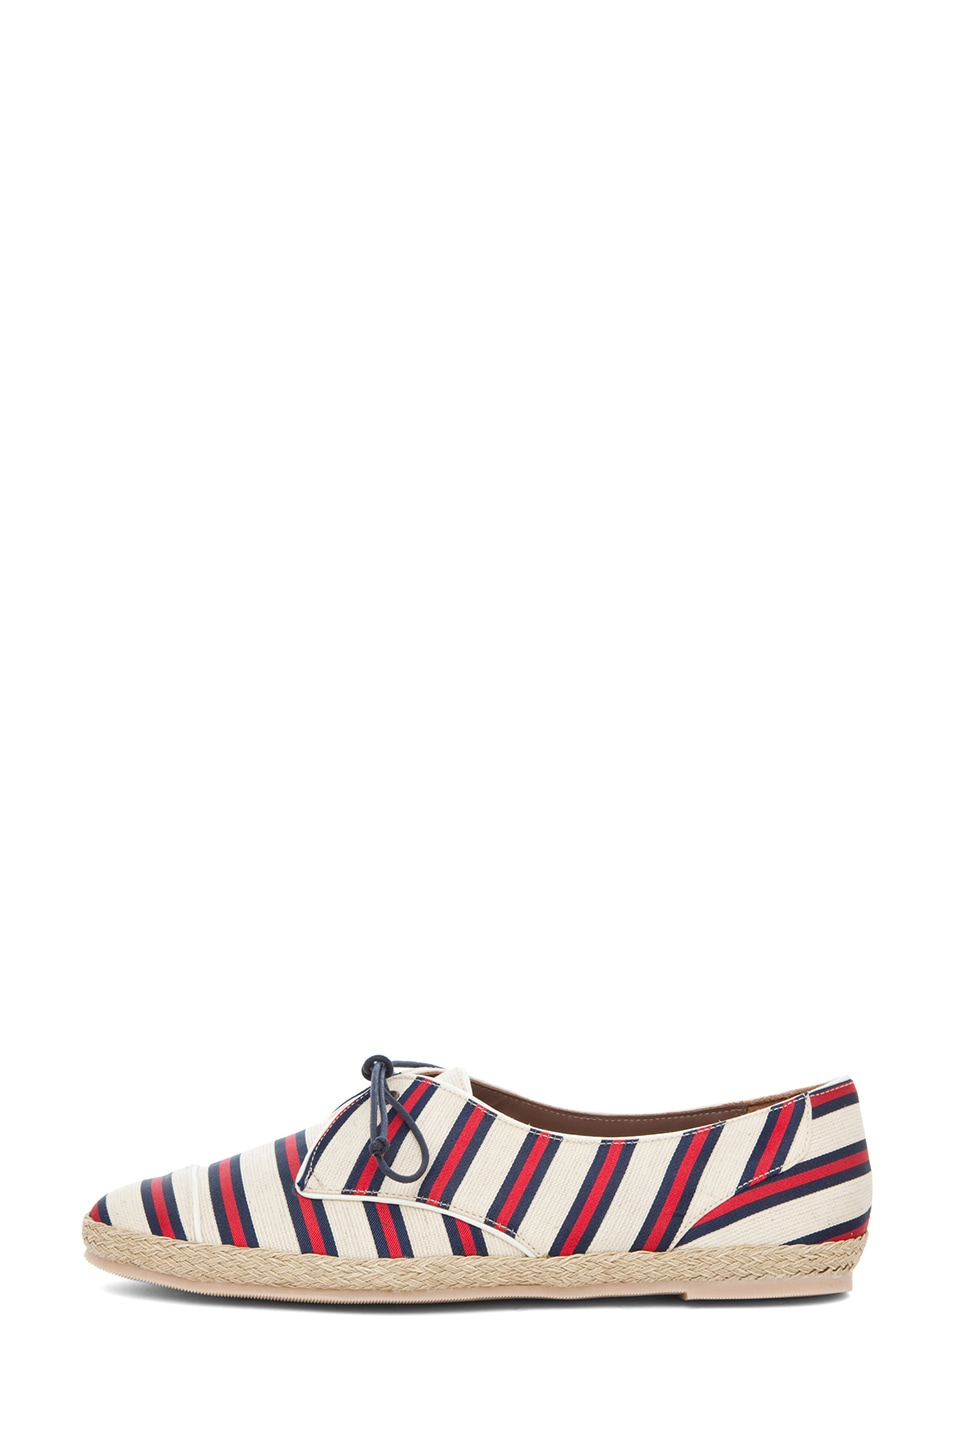 Image 1 of Tabitha Simmons Dolly Shiny-Canvas Cricket Stripe Flats in Red & Navy